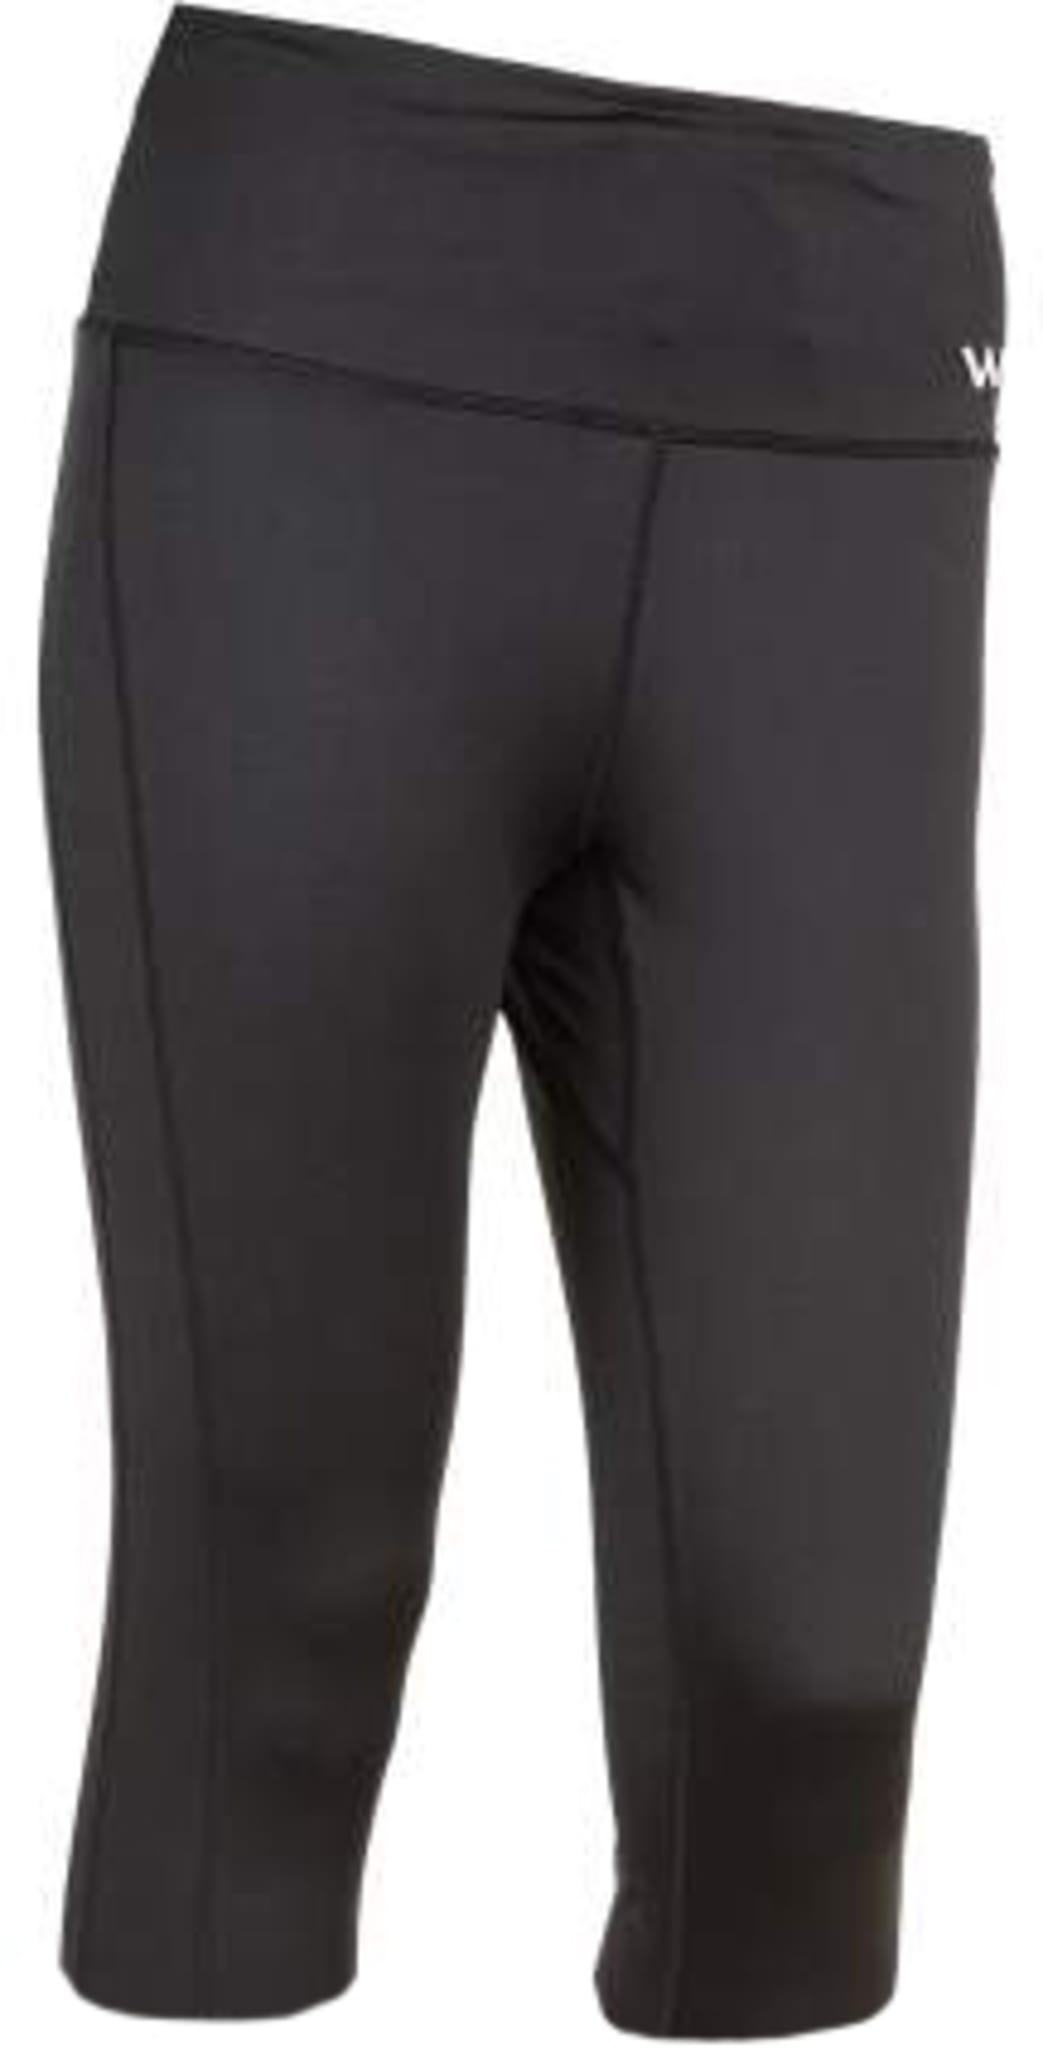 Grovia Running Tights 3/4 W